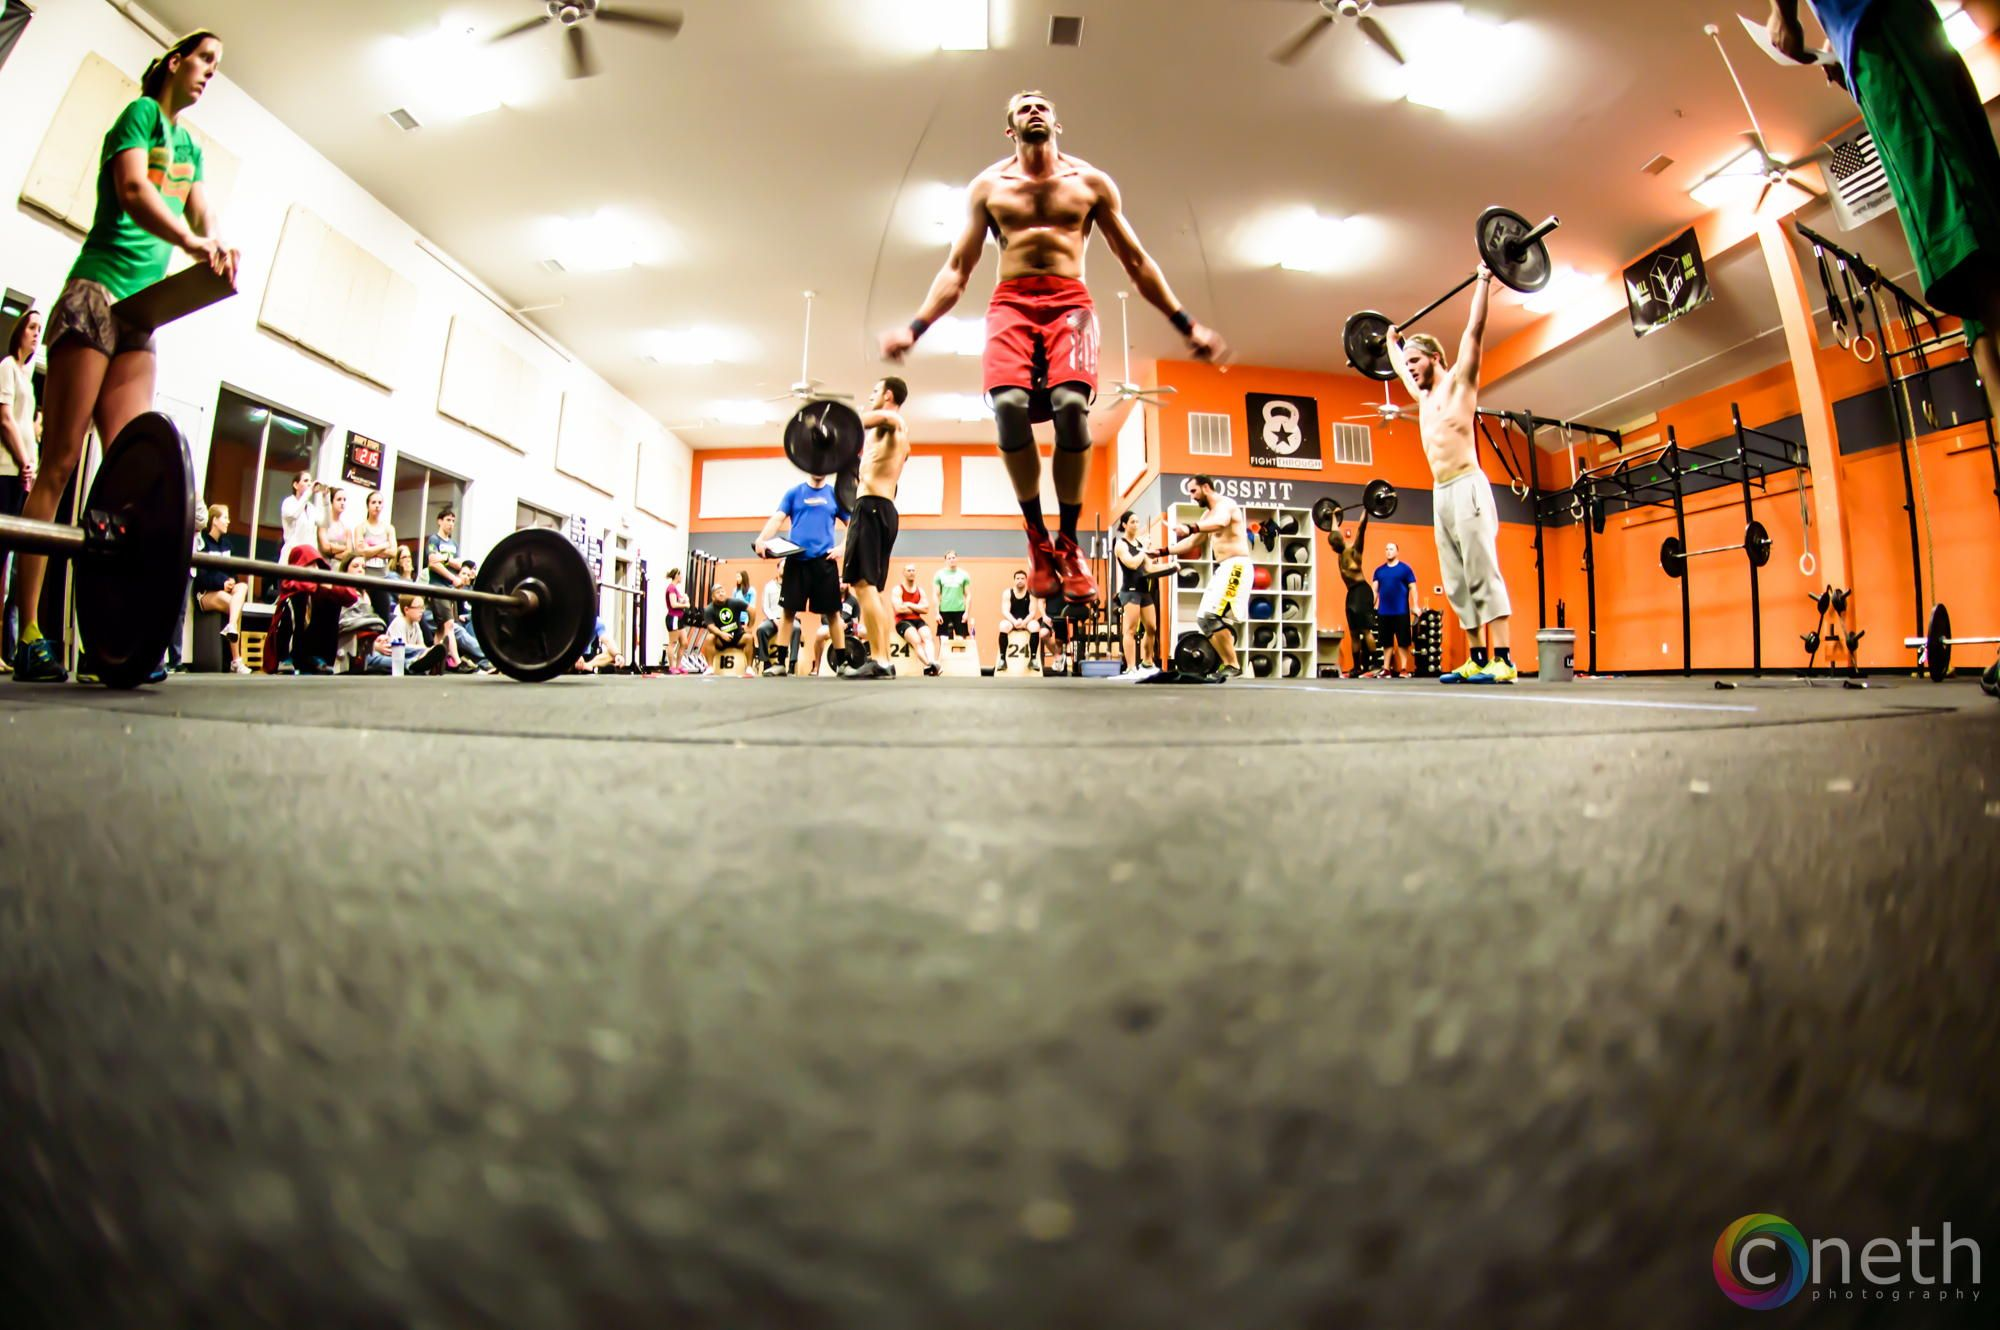 CrossFit Games 2014 14.1 Workout by Cathy Neth on 500px